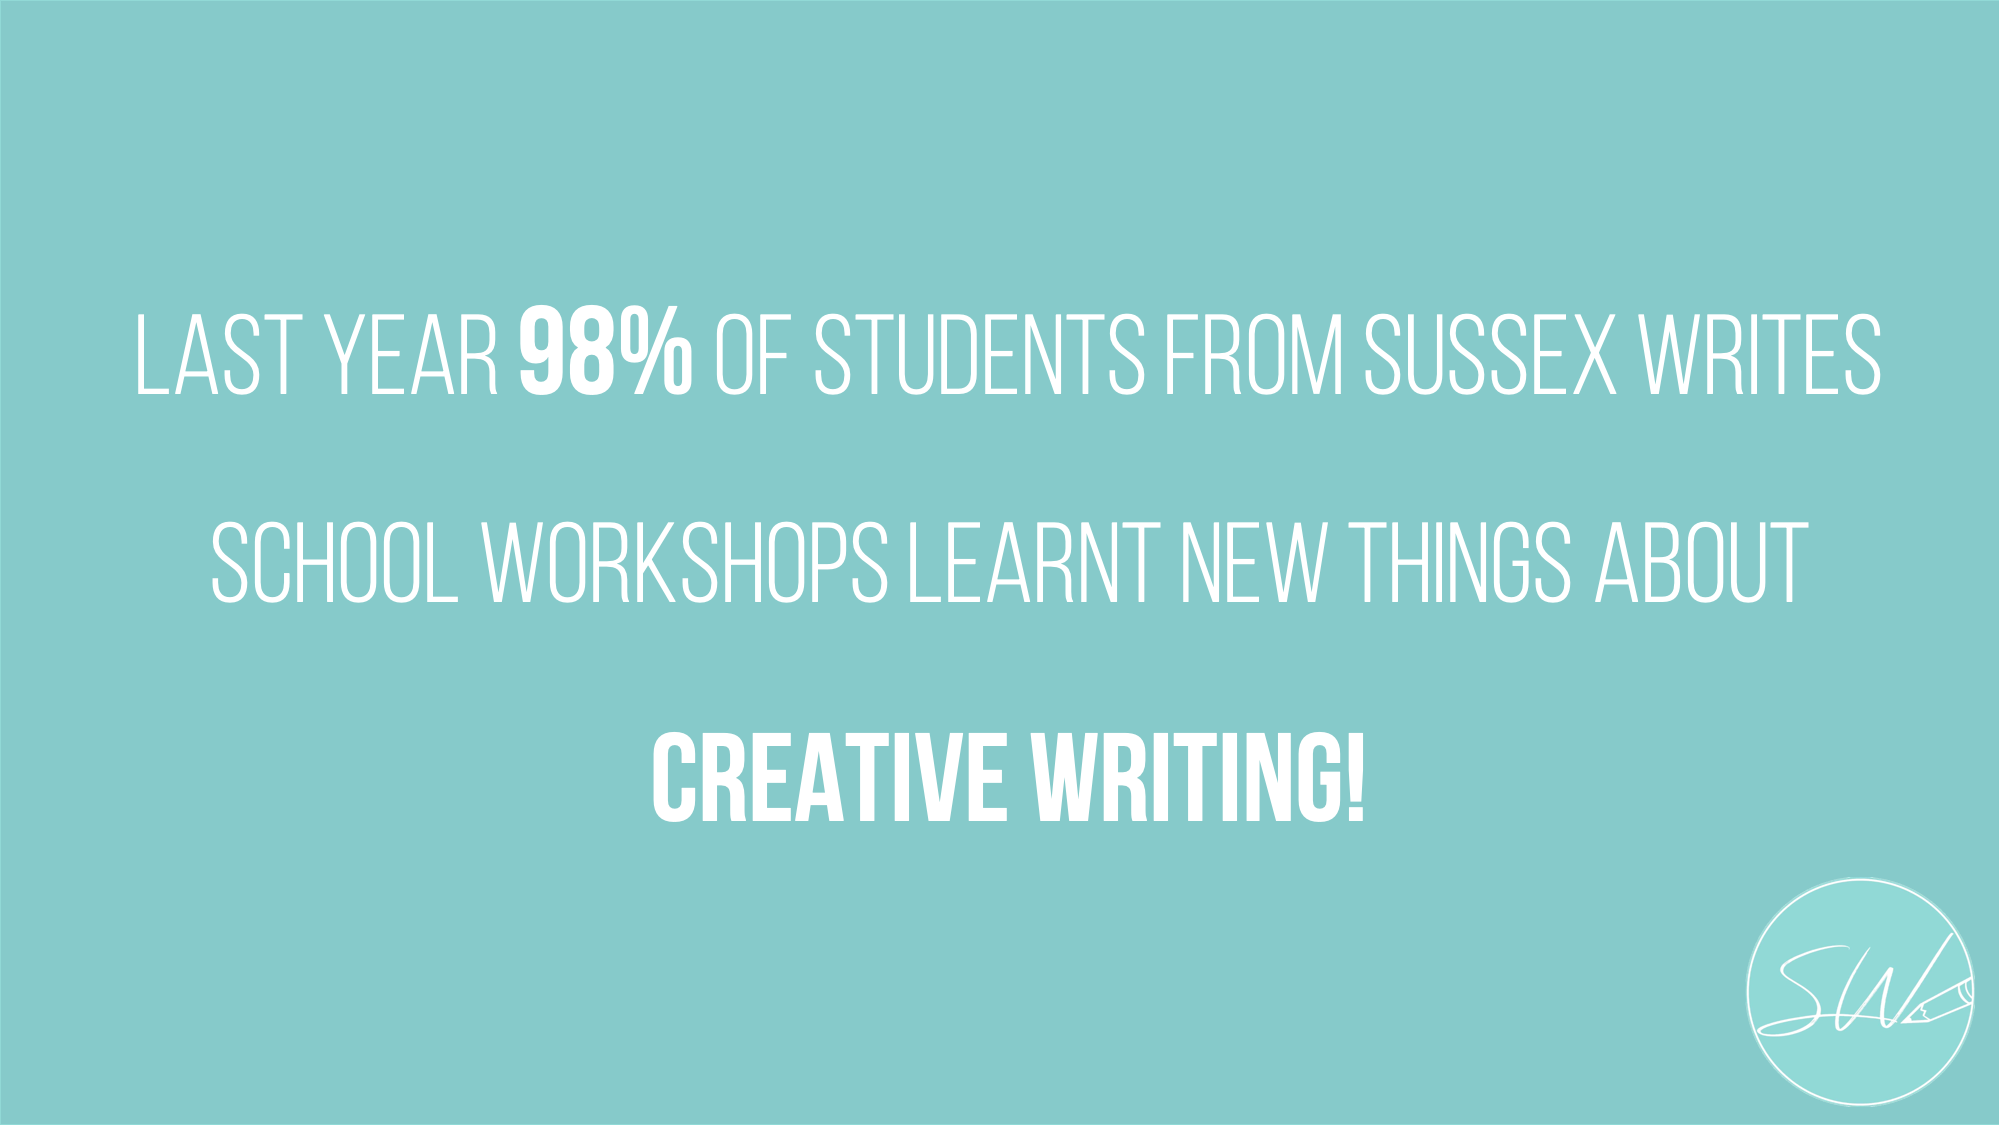 creative writing stats sussex writes